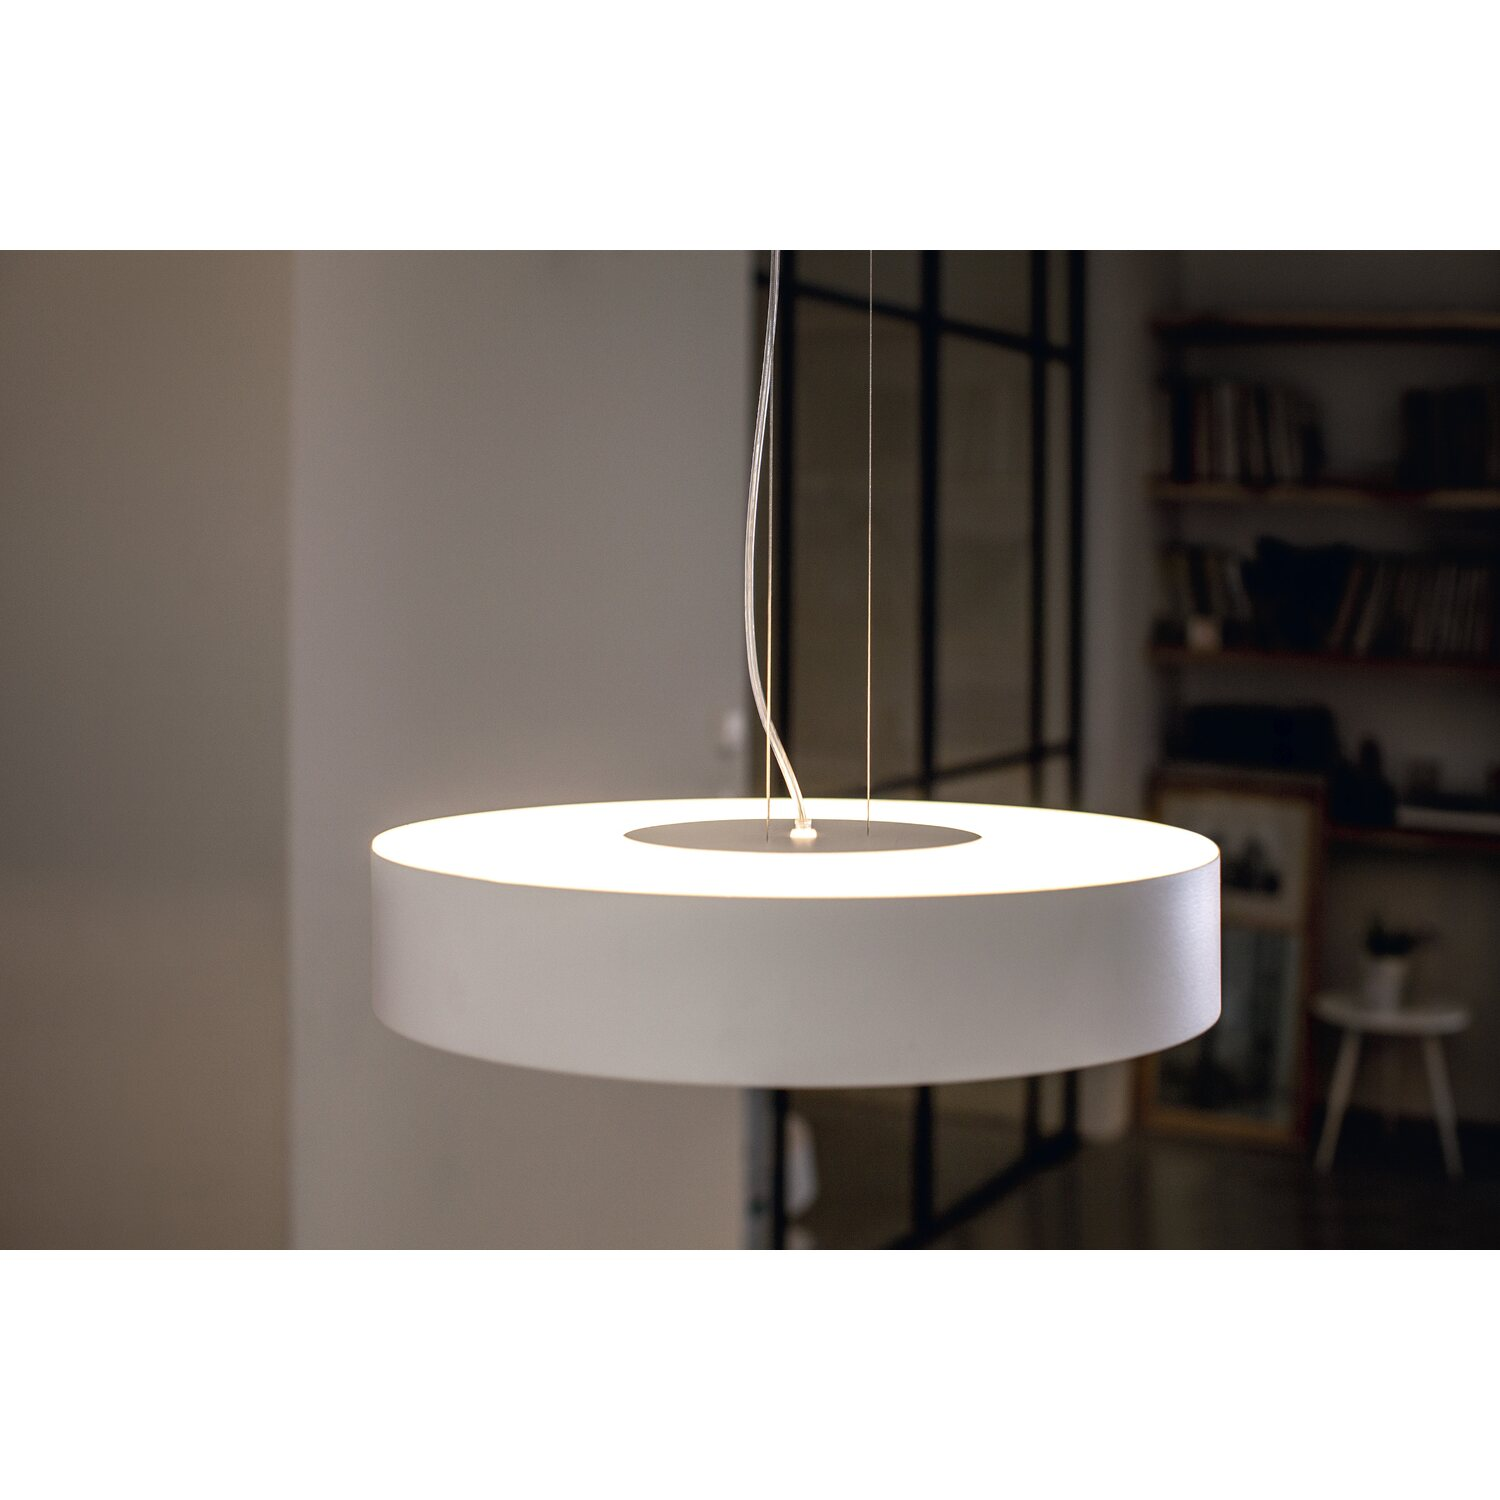 Philips hue lampadario a sospensione led fair con for Obi illuminazione